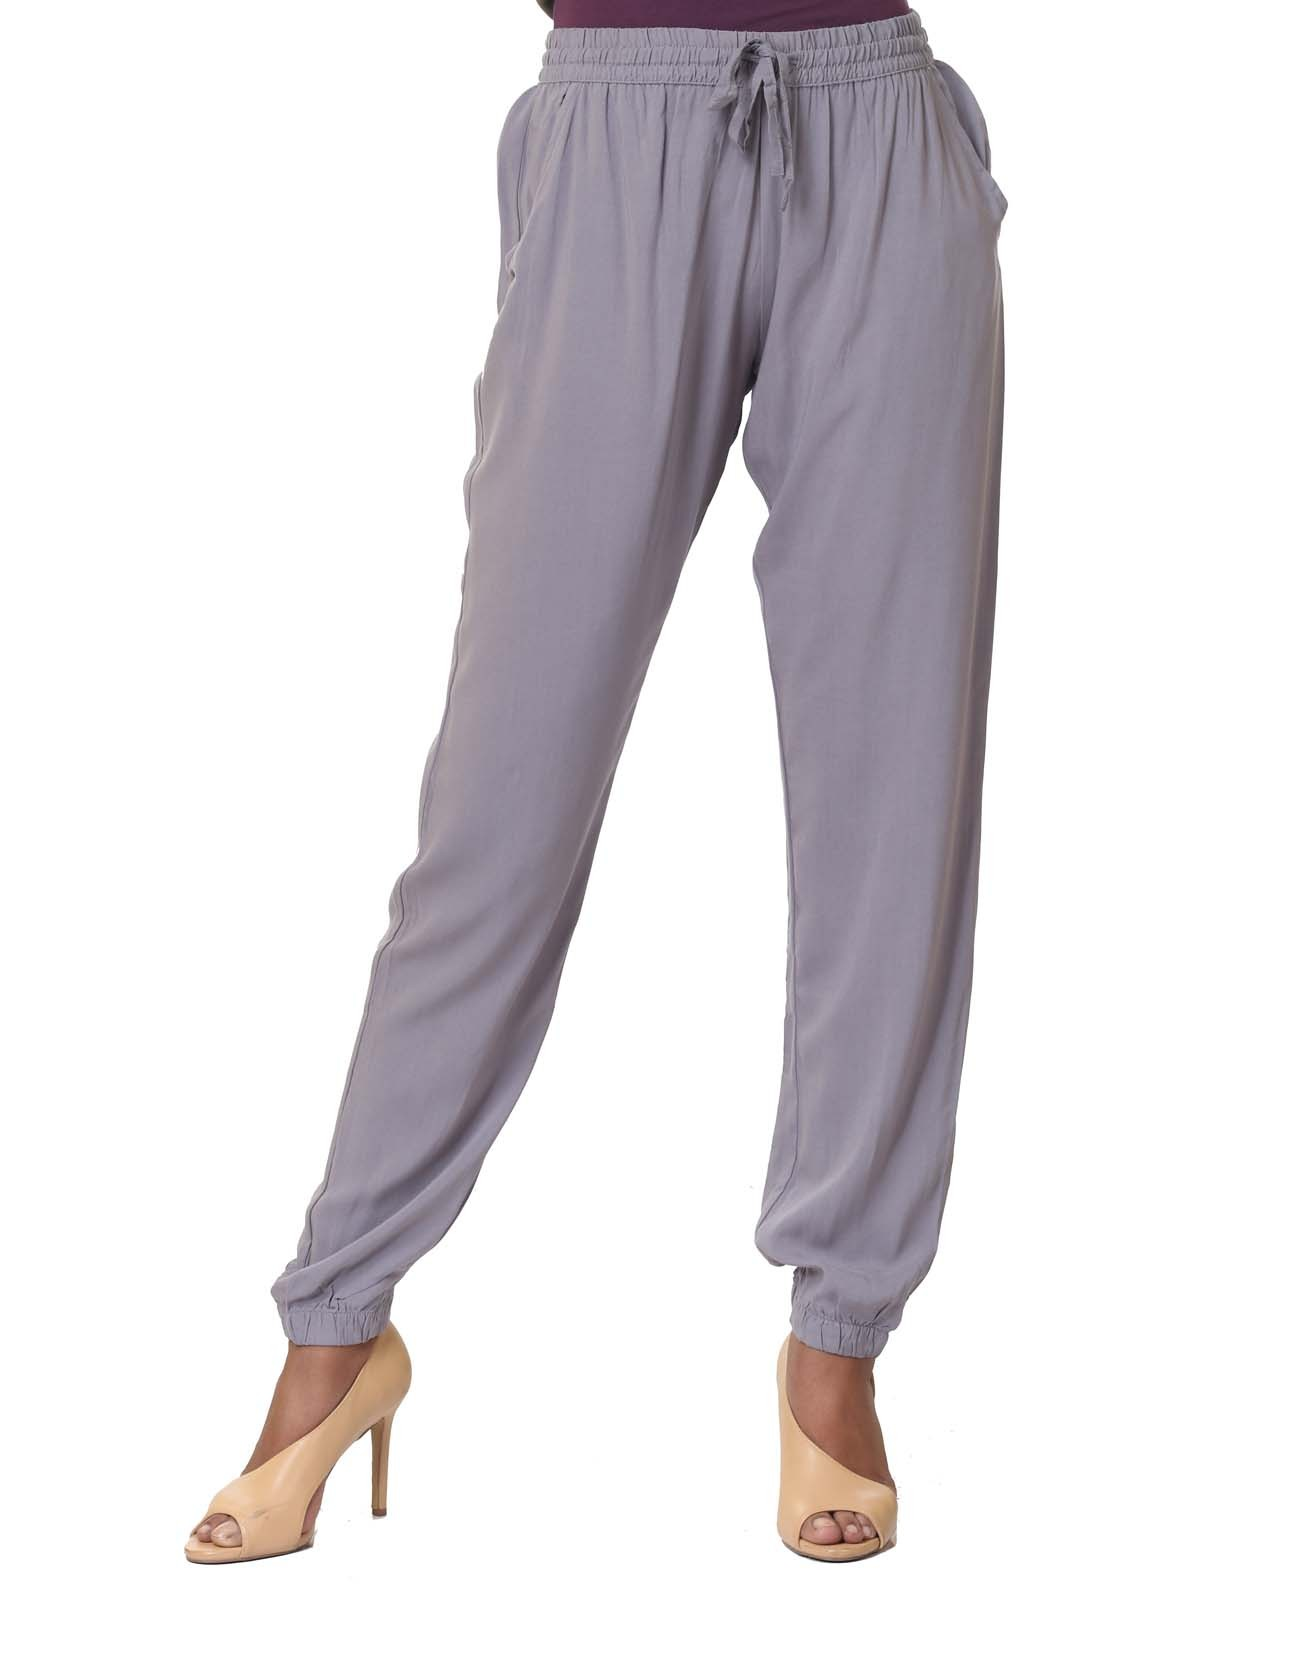 Style Joggers